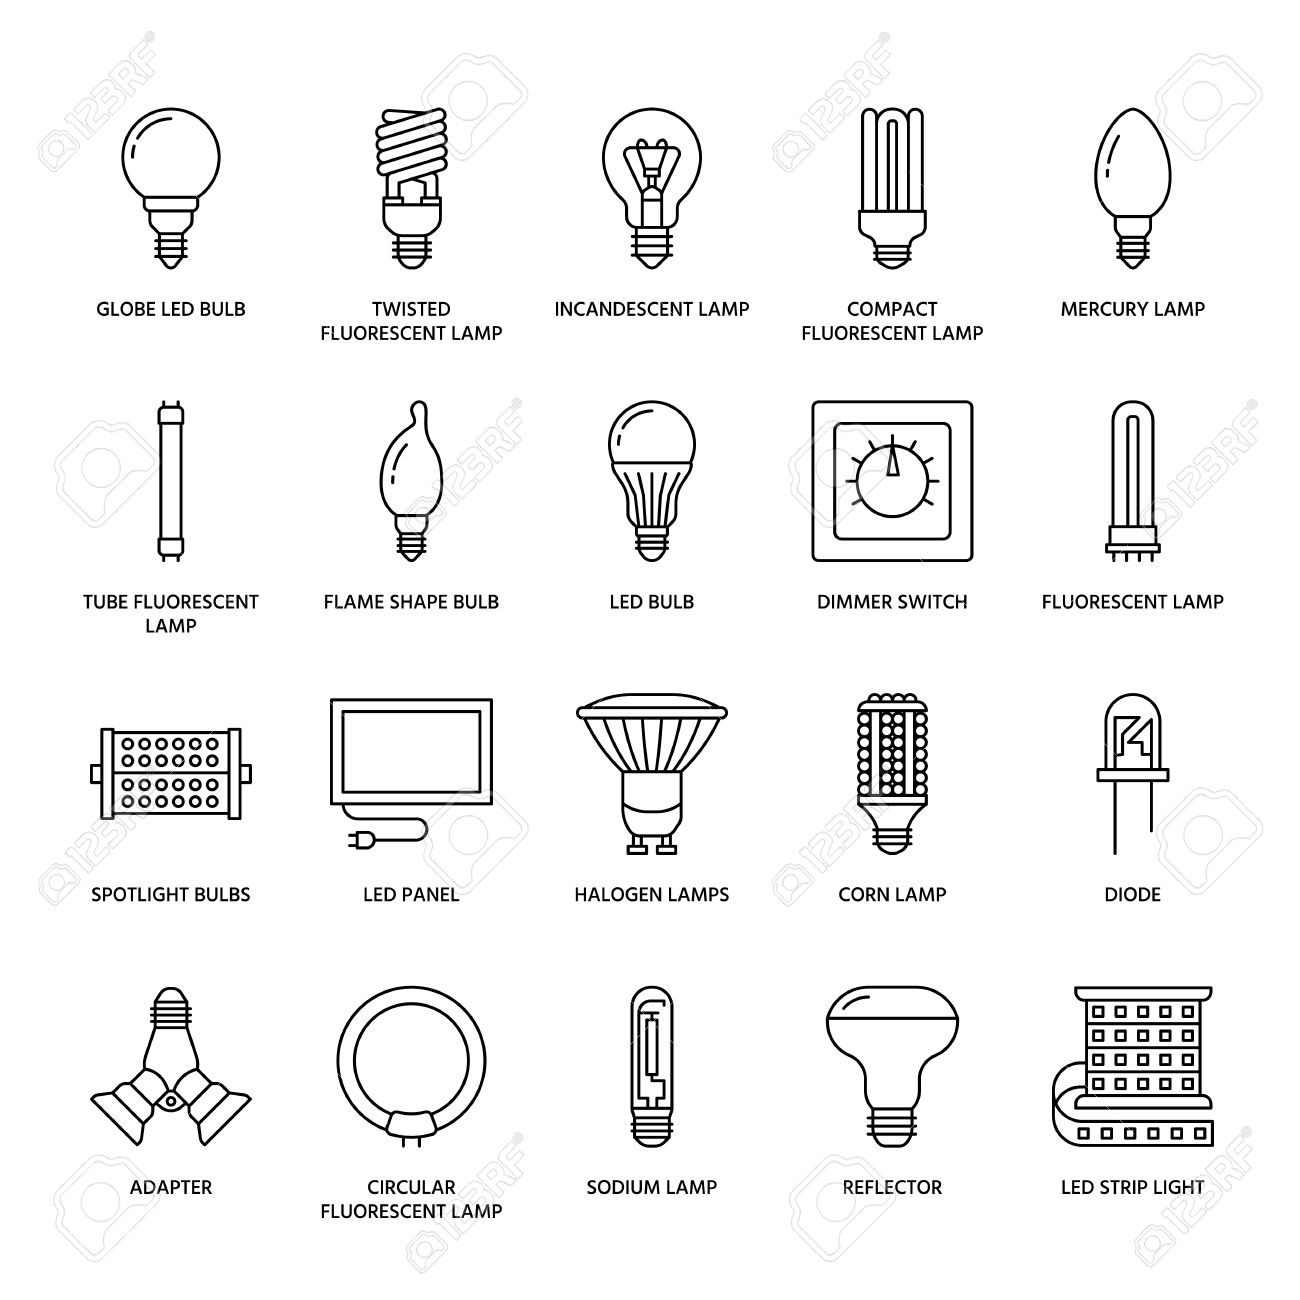 Diode lamp: types and description 2